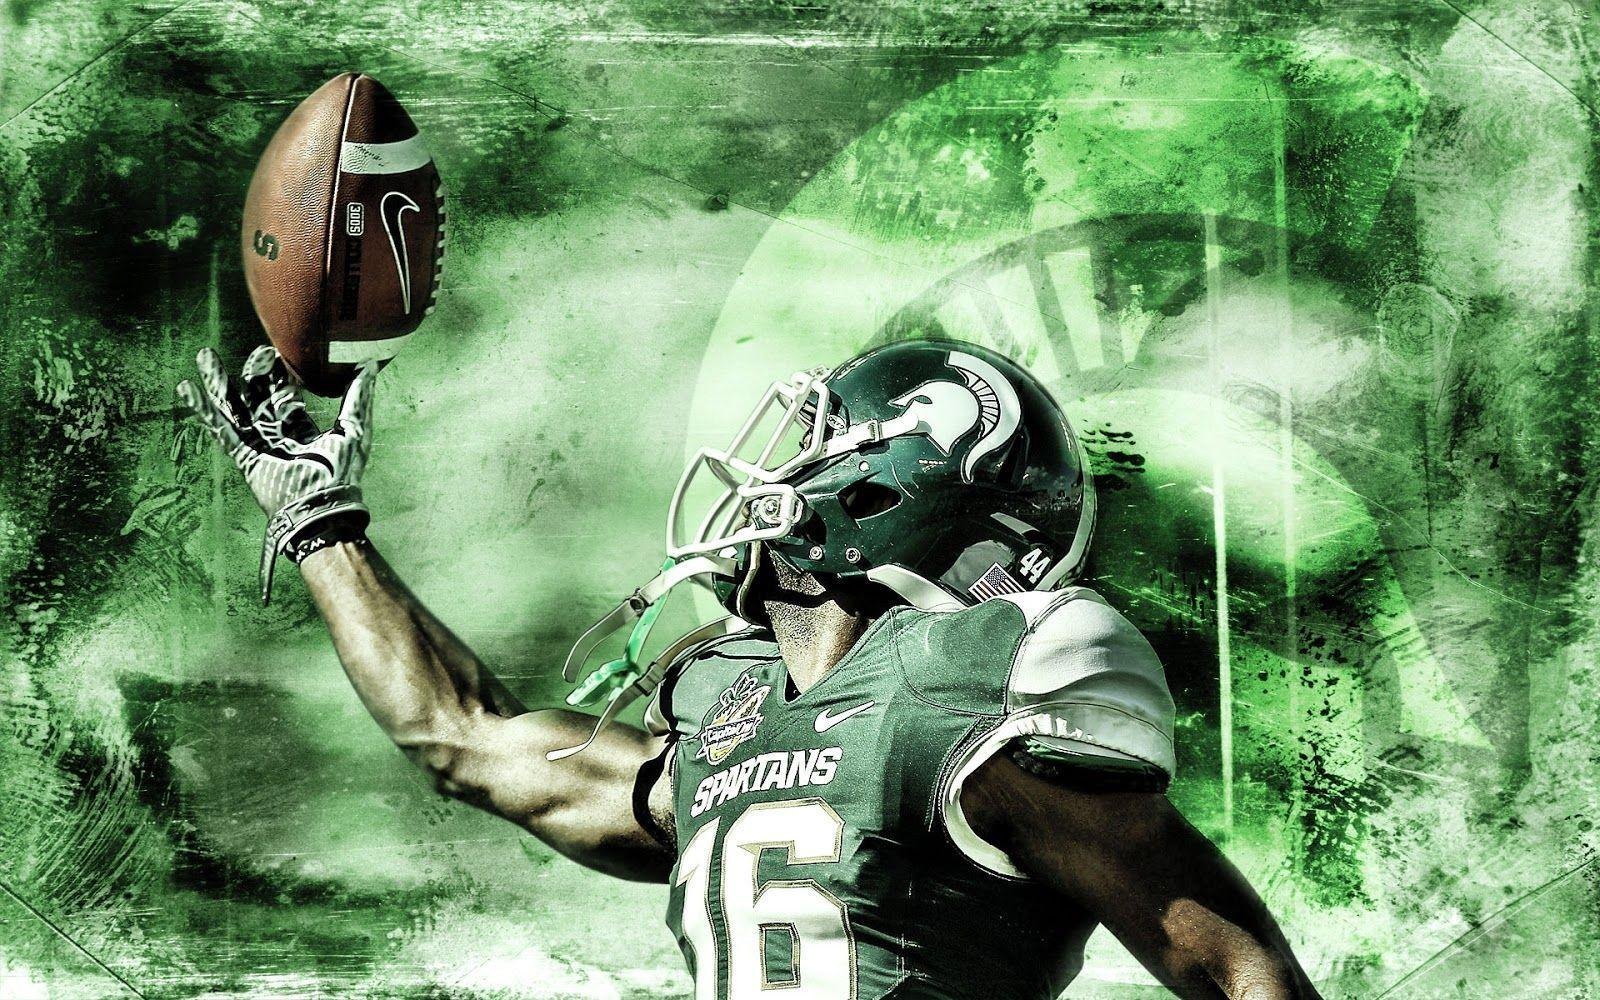 Michigan state spartans football wallpapers wallpaper cave - Michigan state football backgrounds ...